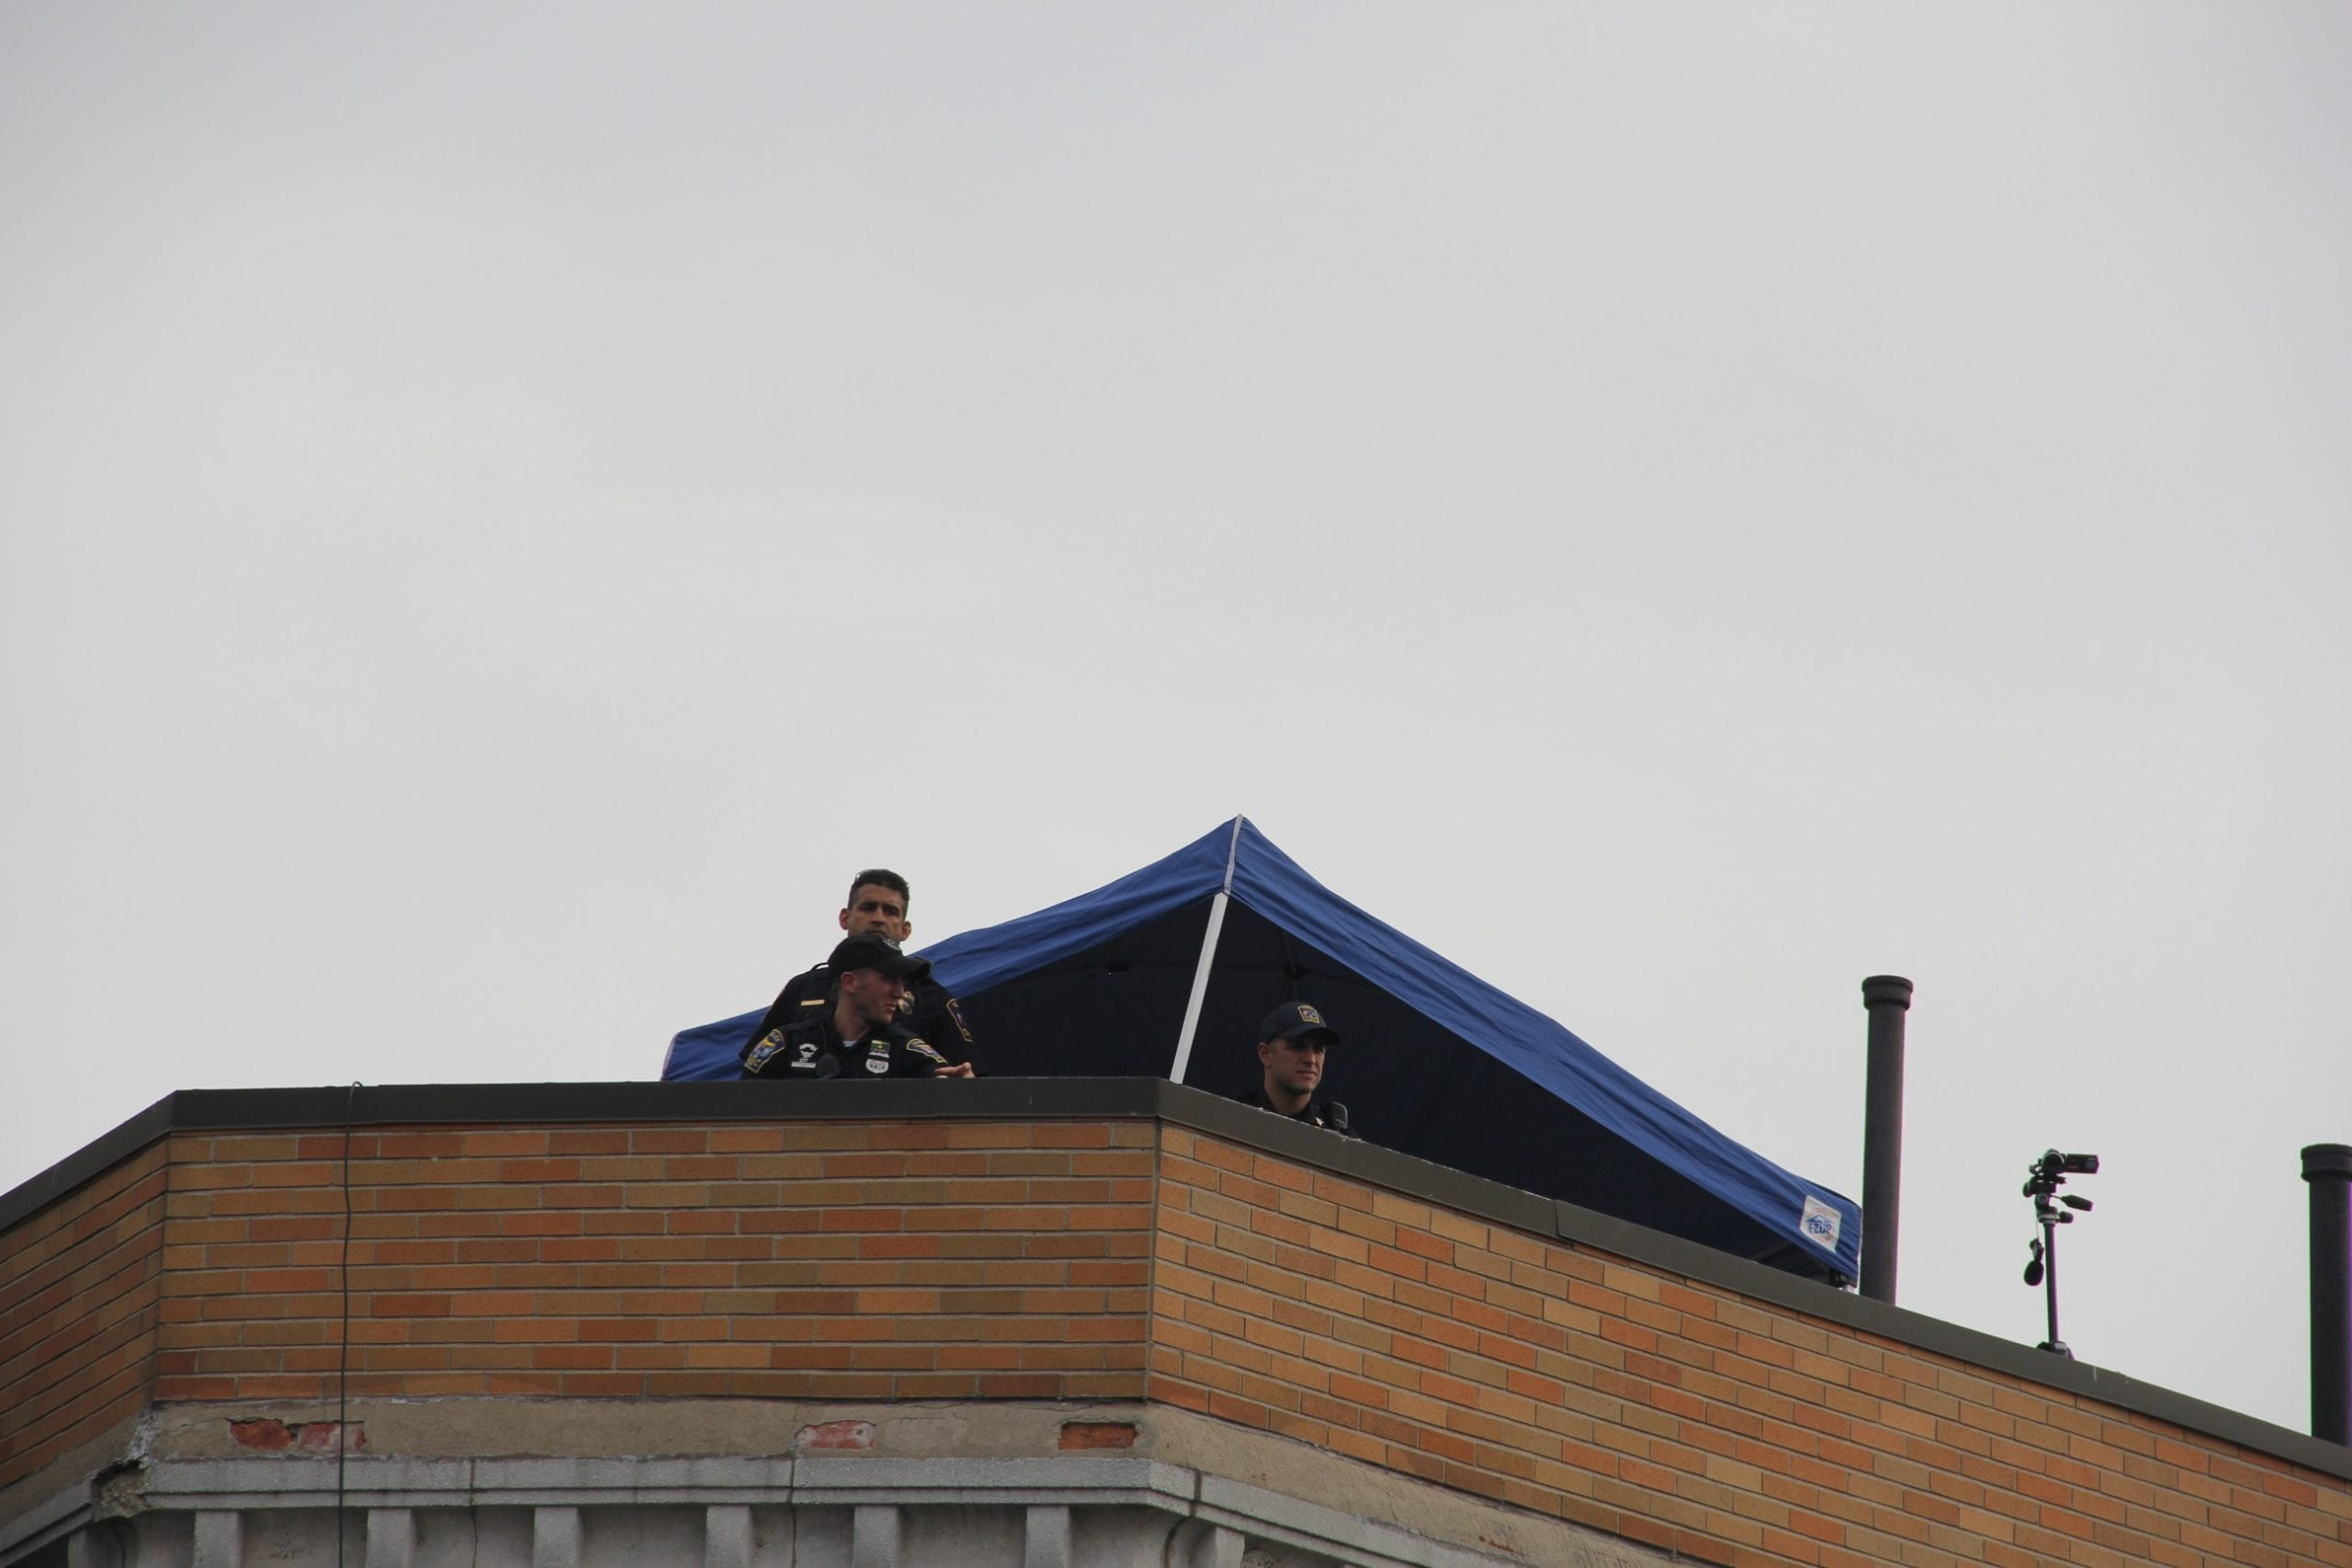 Police presence on the roof of Bruegger's Bagels during the Black Lives Matter rally in West Hartford. Photo credit: Amy B. Melvin